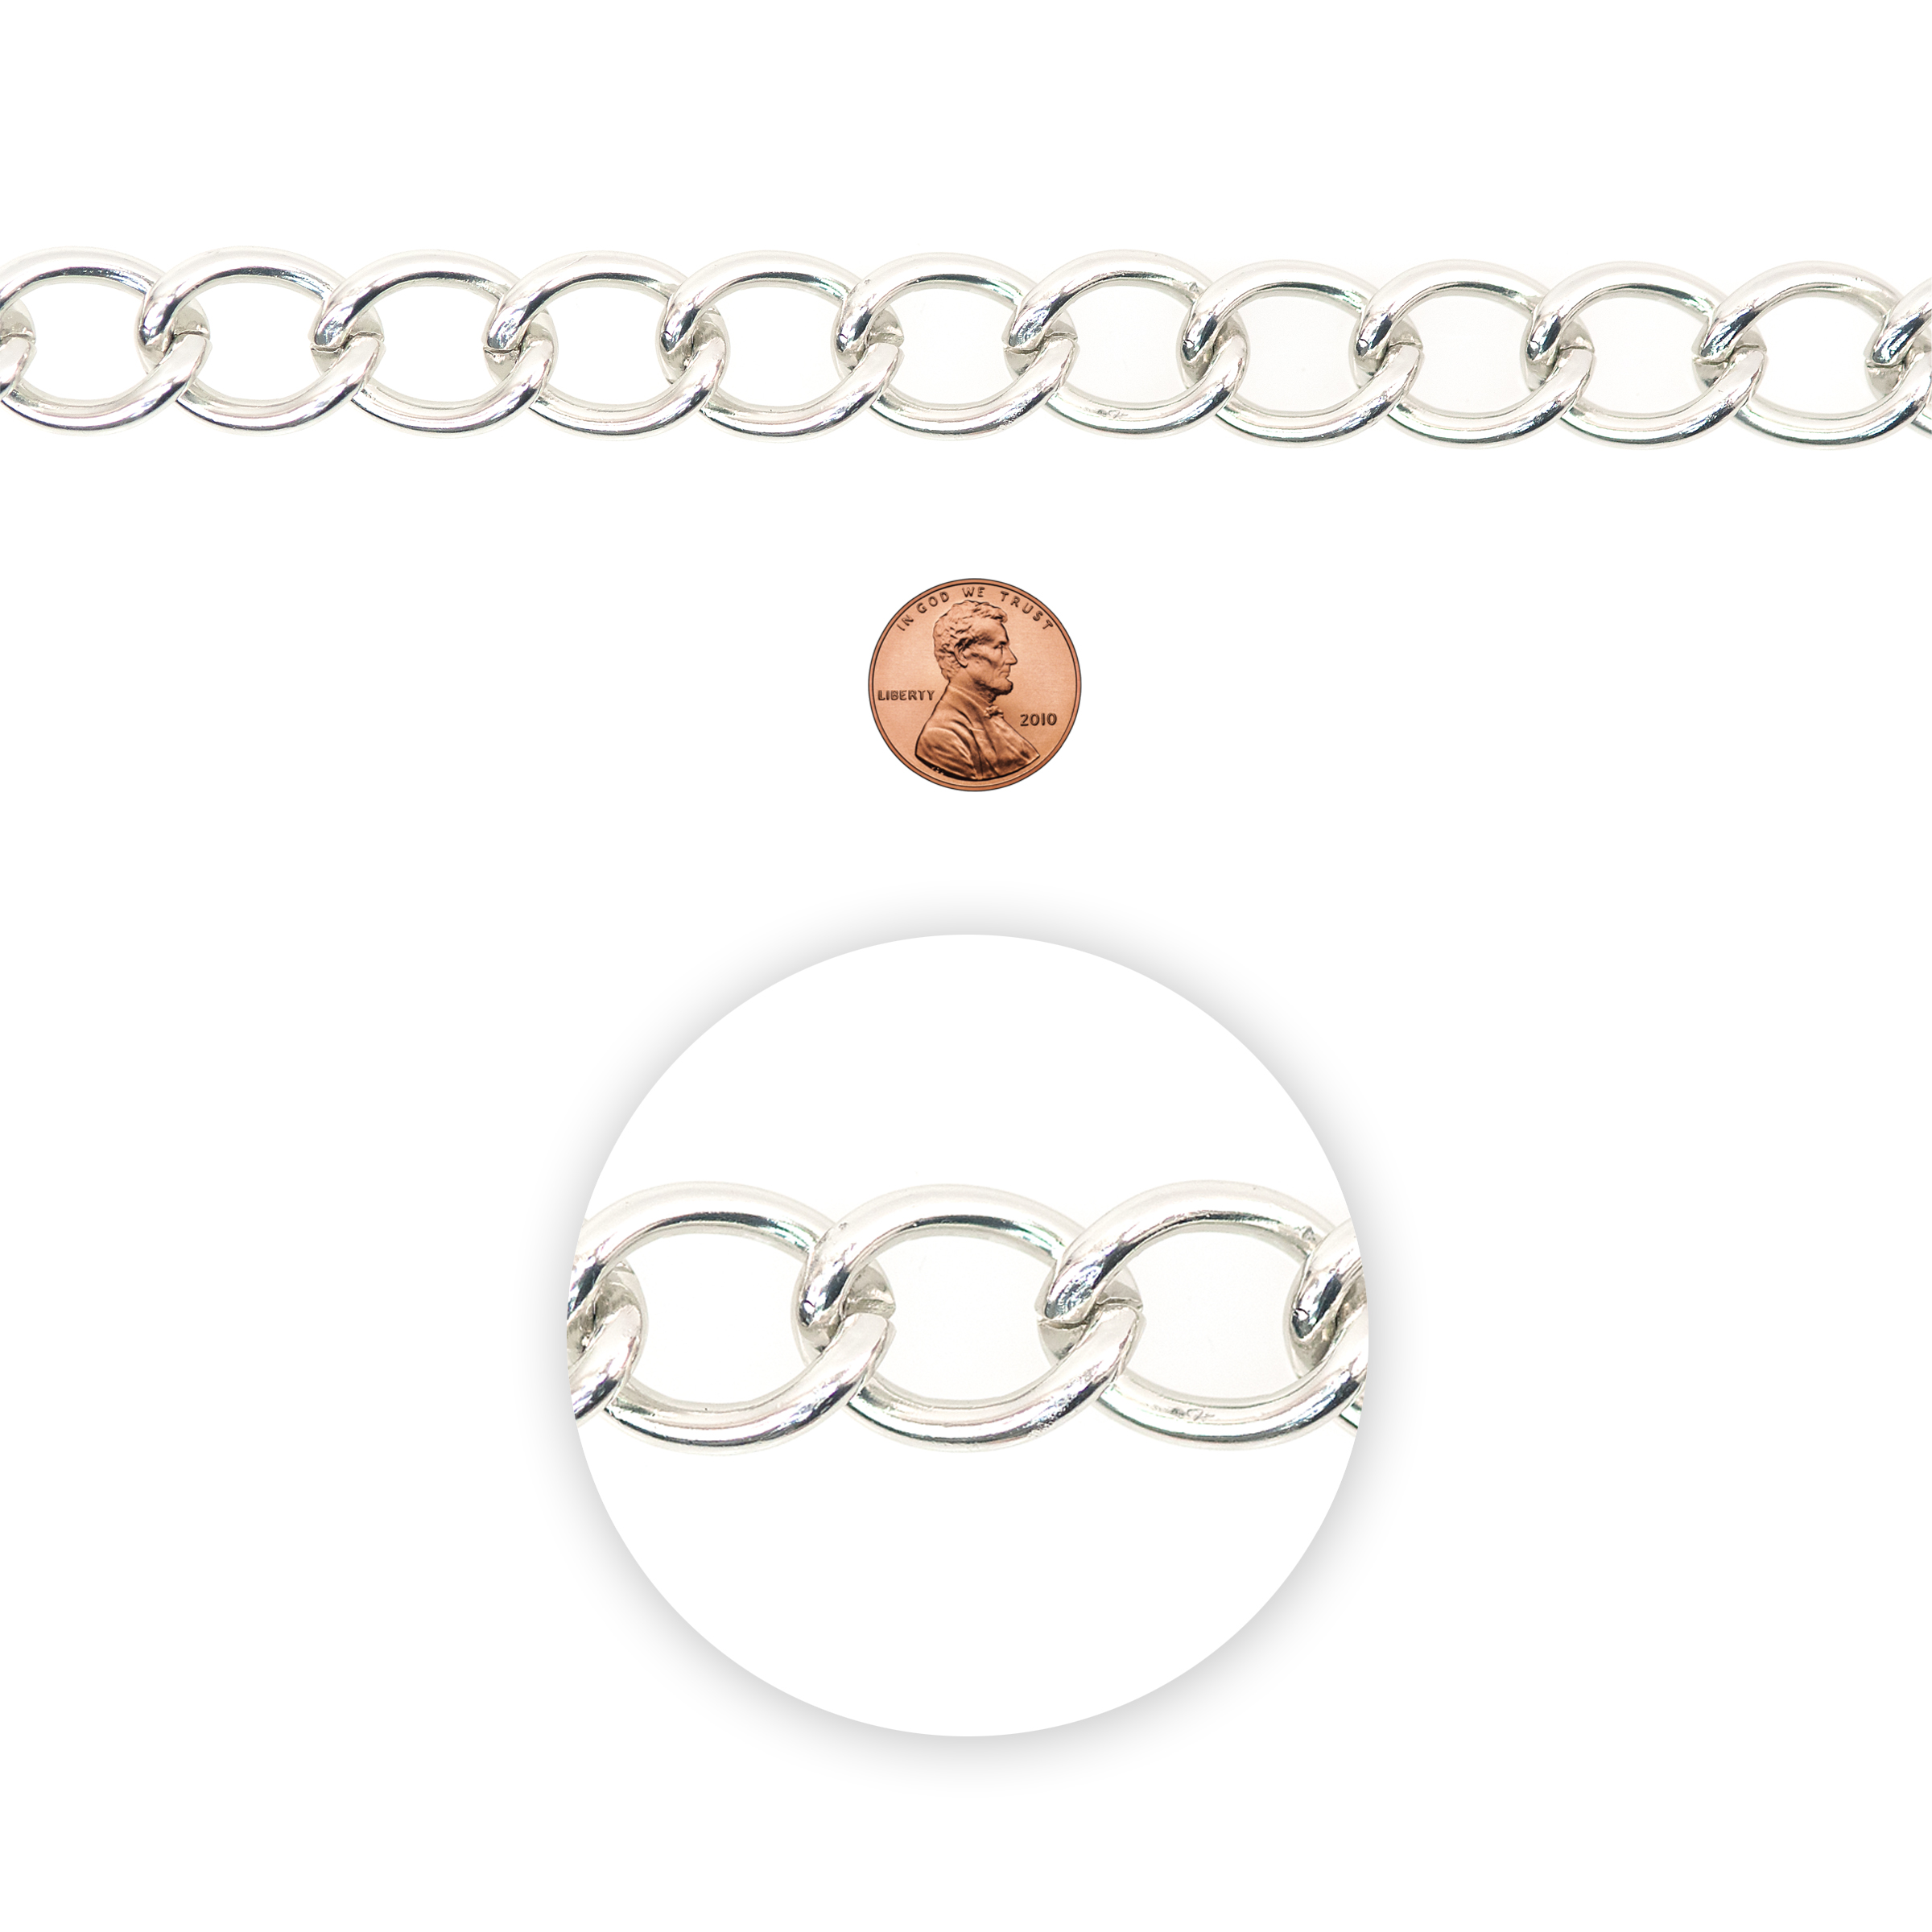 Blue Moon Beads Chain, Curb Link, Large, Silver